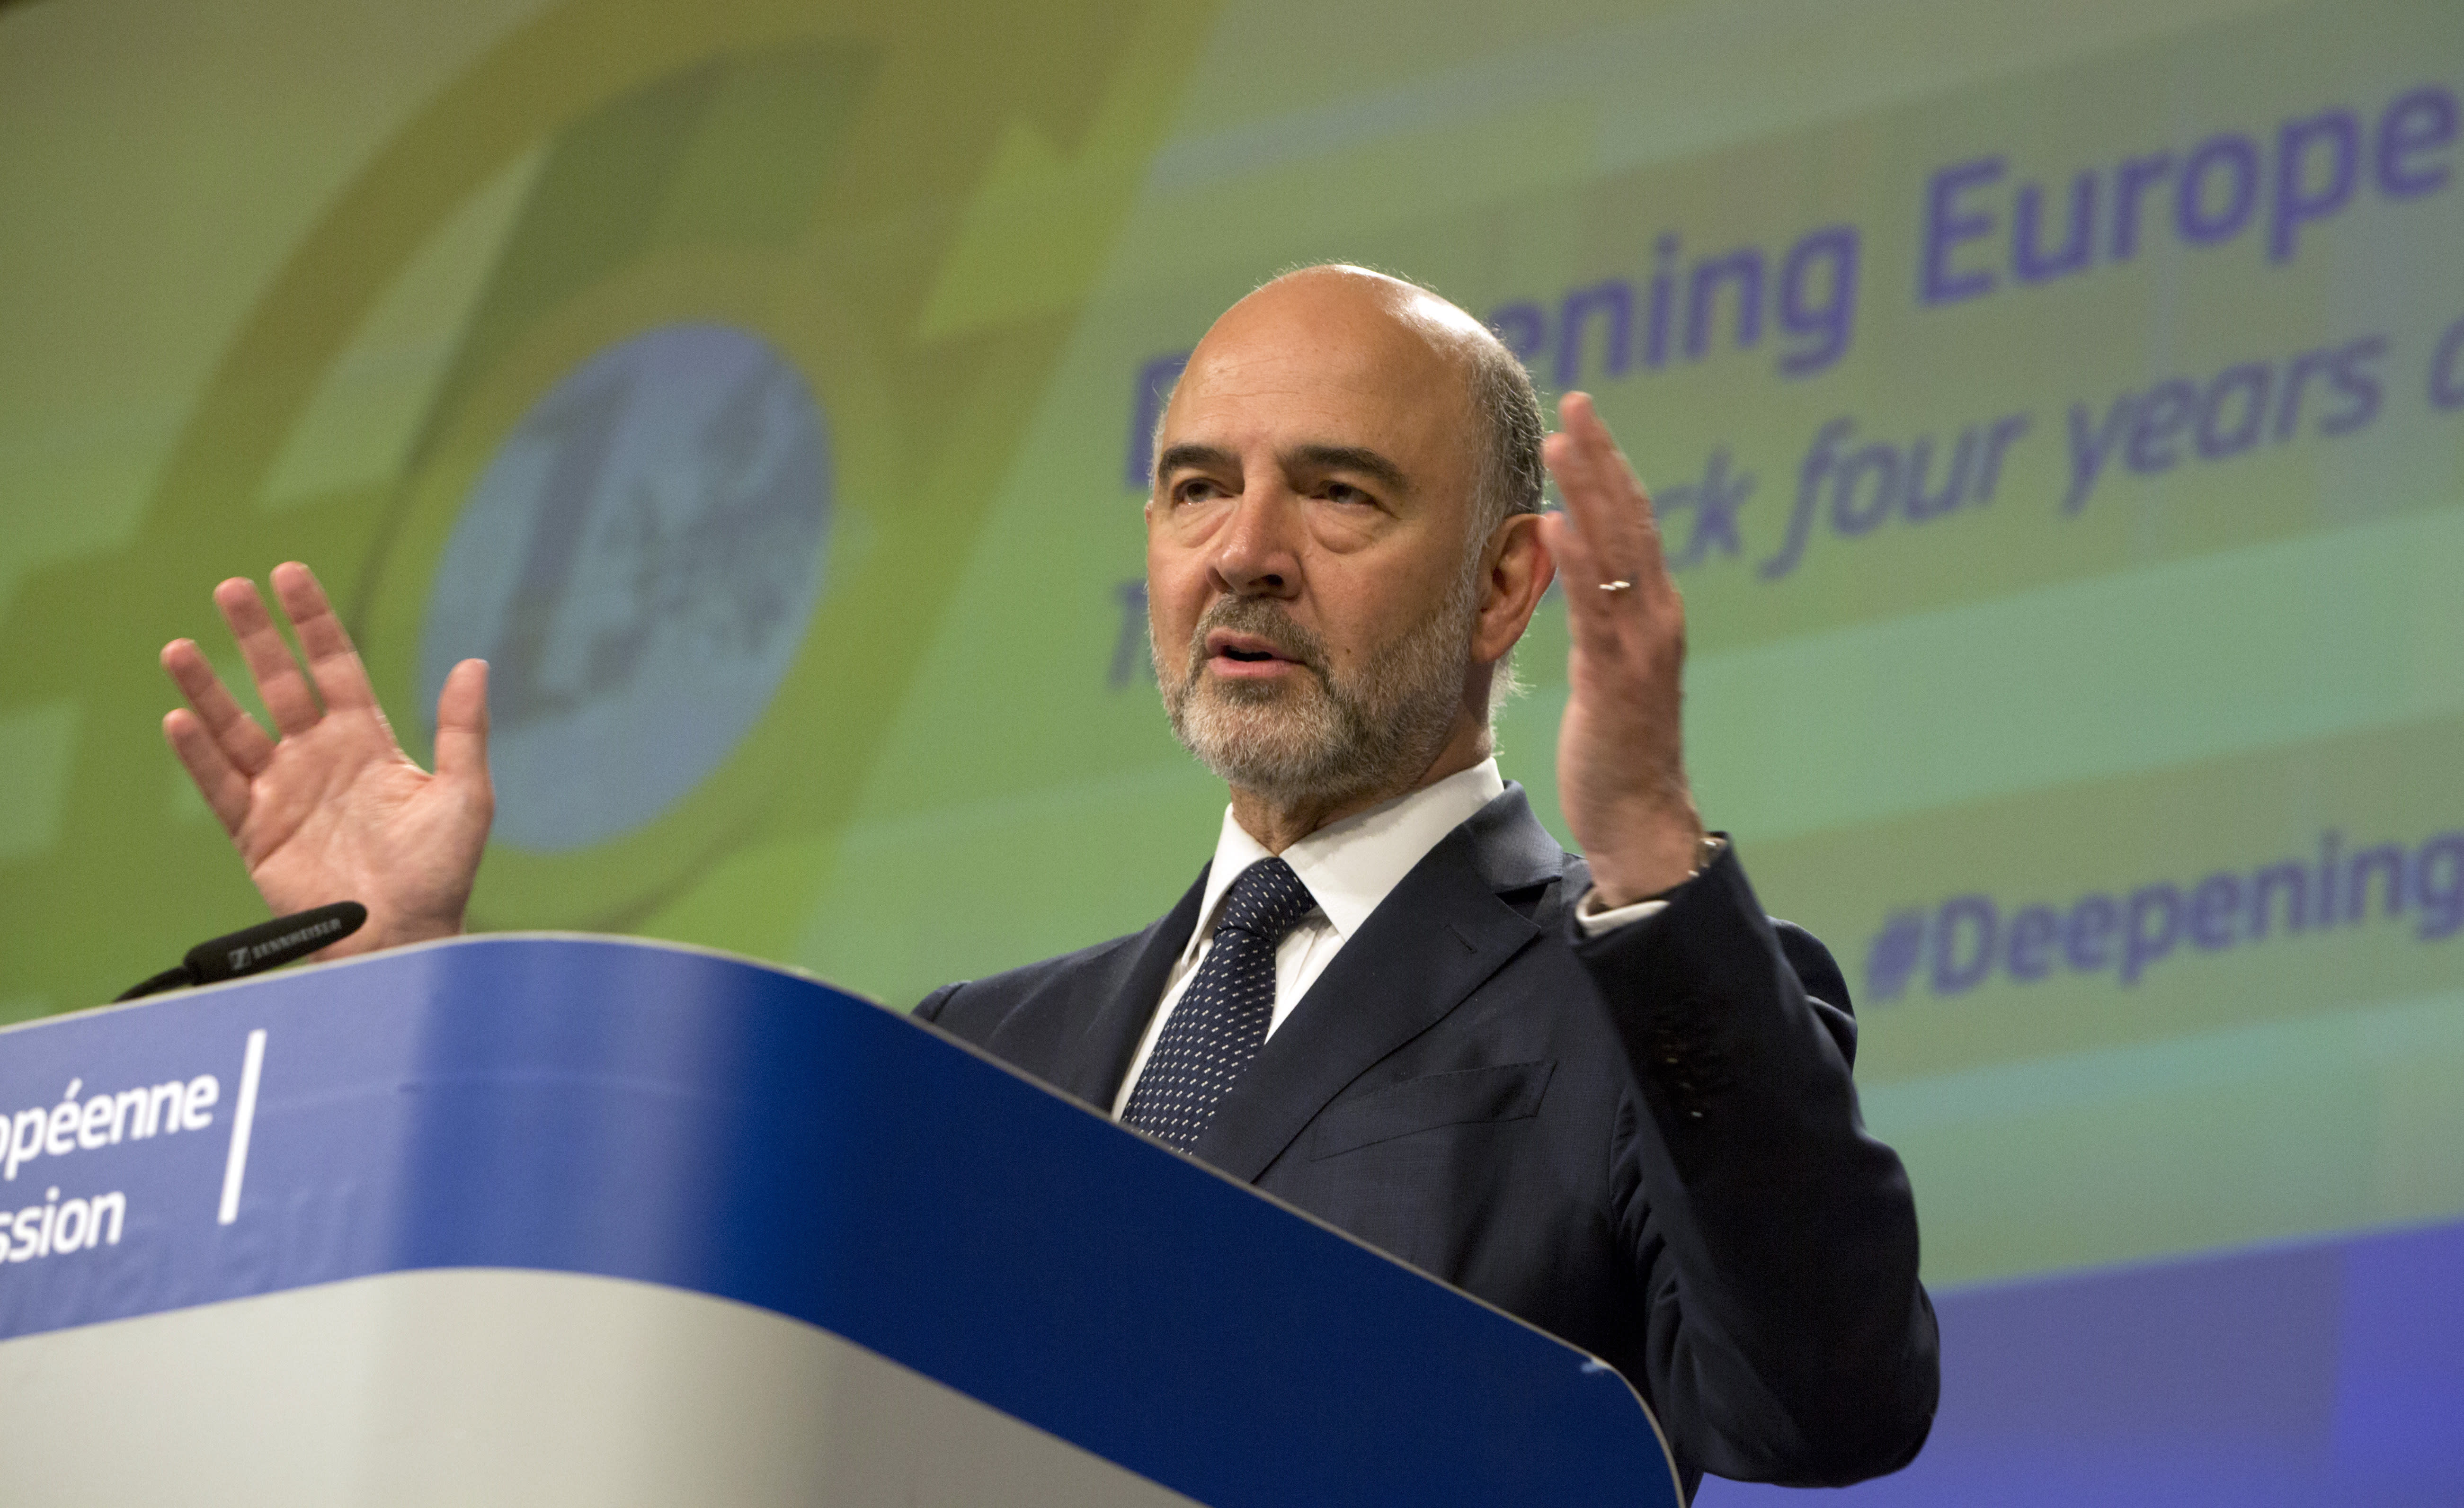 European Commissioner for Economic and Financial Affairs Pierre Moscovici speaks during a media conference at EU headquarters in Brussels, Wednesday, June 12, 2019. The European Commission on Wednesday took stock of the progress made to deepen Europe's Economic and Monetary Union and calls on Member States to take further concrete steps. (AP Photo/Virginia Mayo)